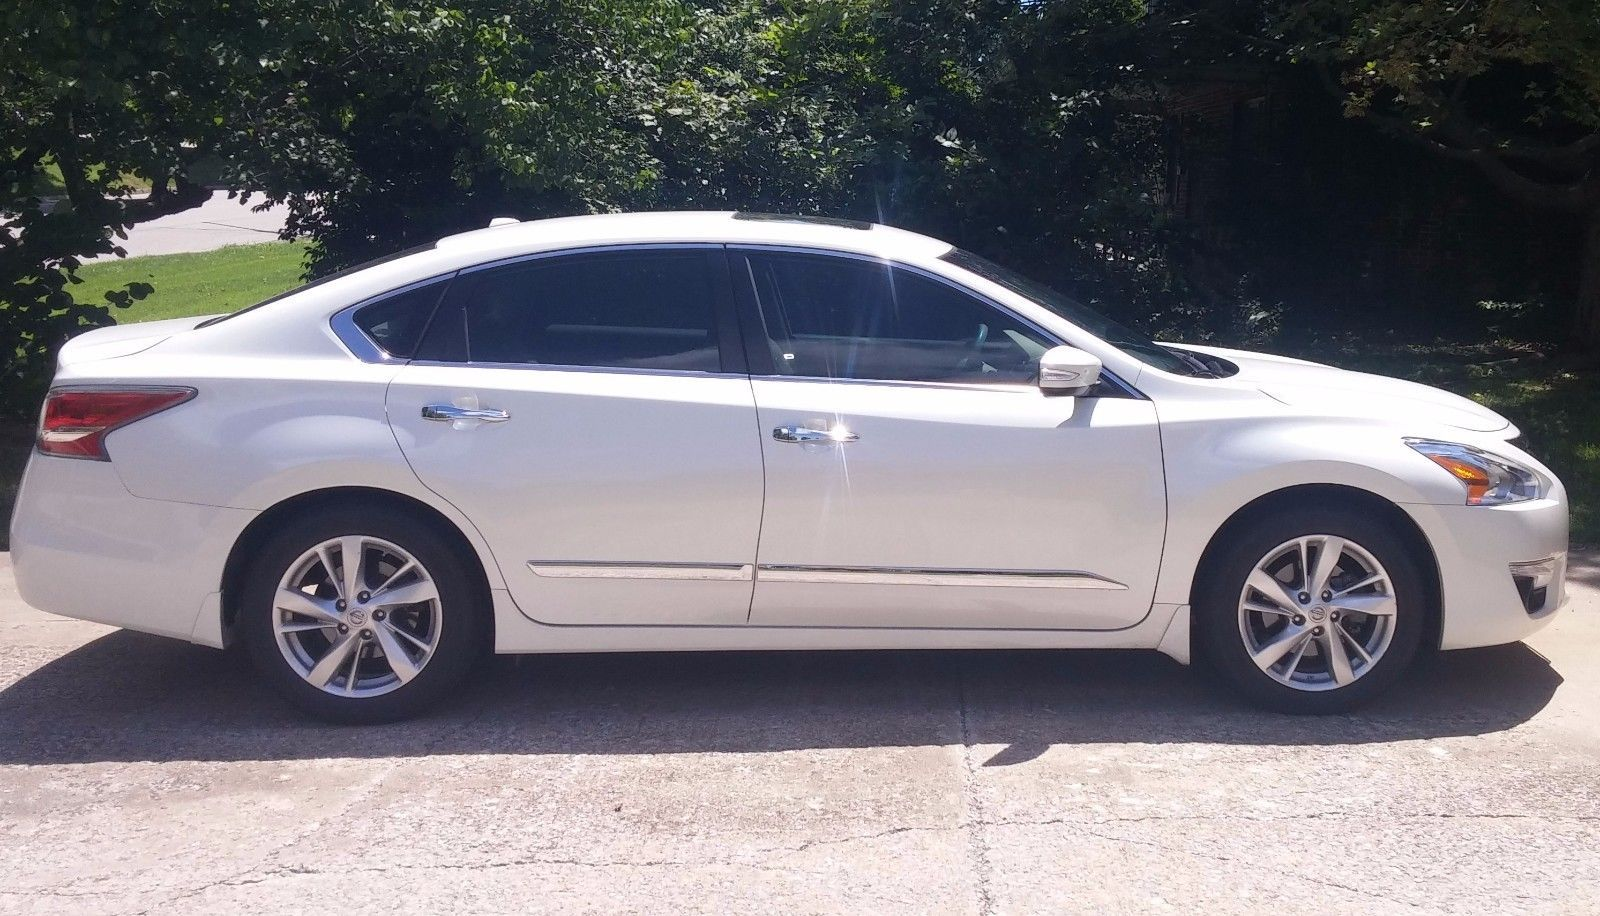 Awesome Nissan 2017 2015 Nissan Altima 2 5 Sl Fwd Pearl White 2015 Nissan Altima 2 5 Sl Fwd With 32573 Miles Check More At Http 24a Nissan Altima Altima Fwd